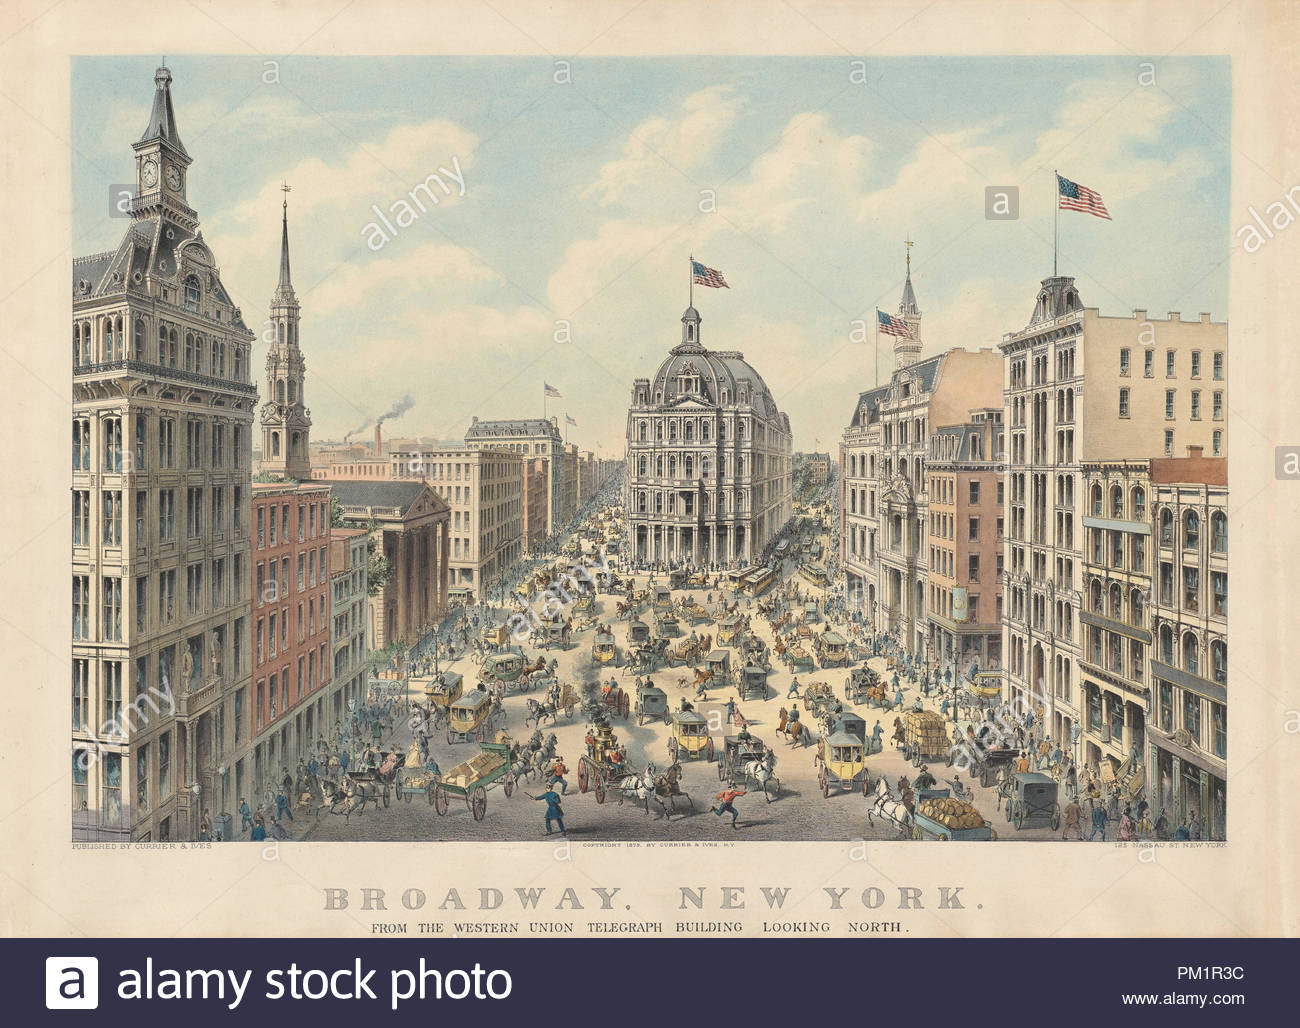 Broadway, New York: From the Western Union Telegraph Building Looking North. Dated: 1875. Dimensions: image: 41.3 x 60.6 cm (16 1/4 x 23 7/8 in.)  sheet: 50.4 x 71.3 cm (19 13/16 x 28 1/16 in.). Medium: hand-colored lithograph on wove paper. Museum: National Gallery of Art, Washington DC. Author: Currier and Ives. - Stock Image